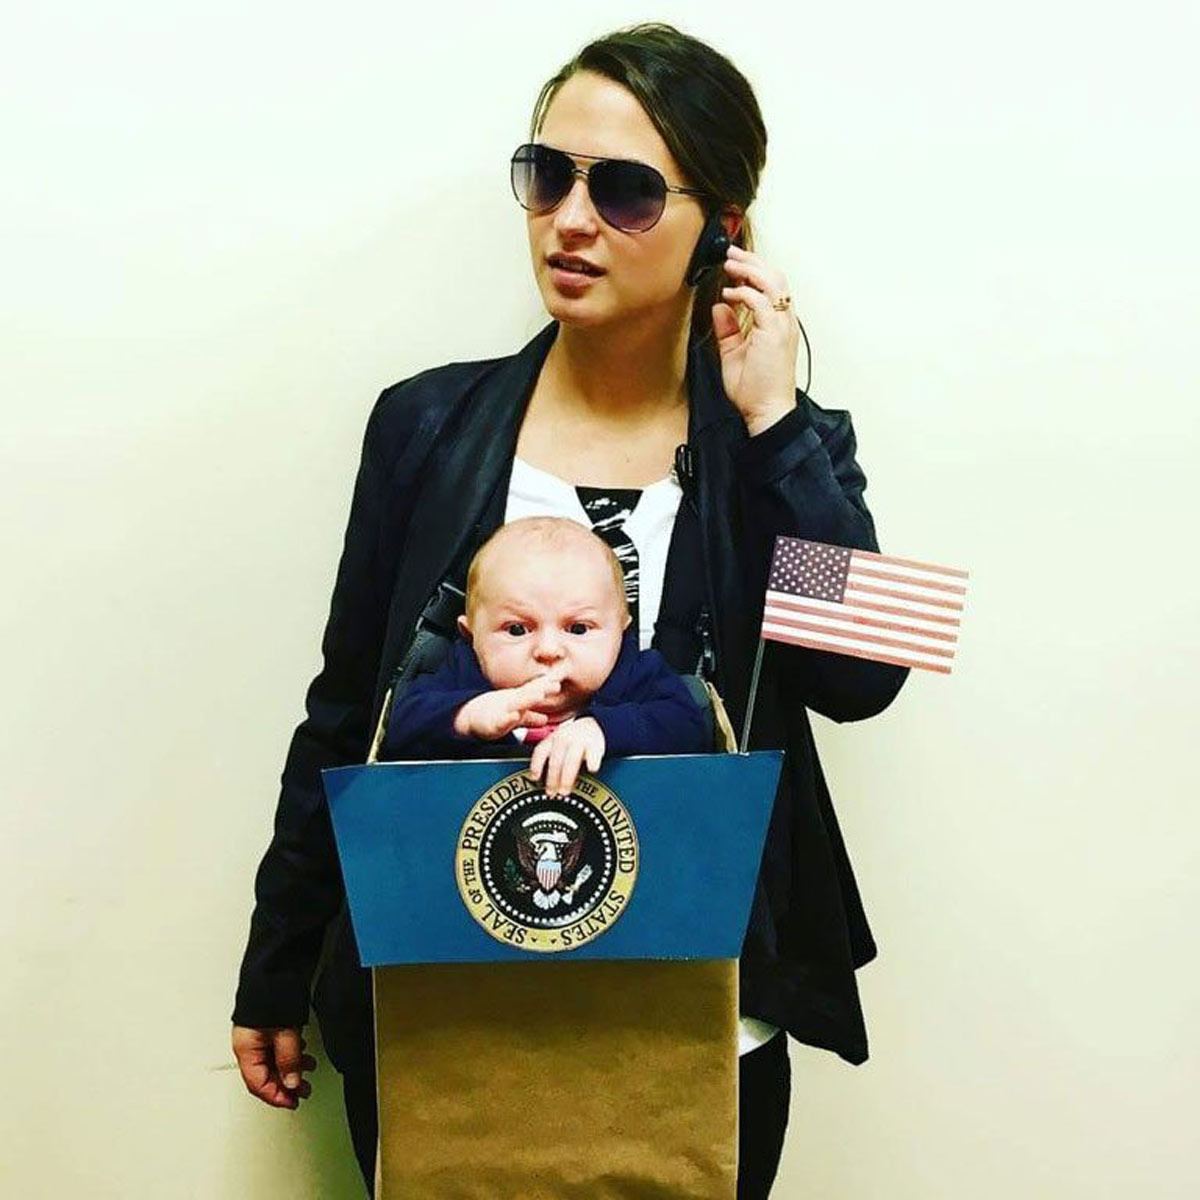 halloween-costume-ideas-president